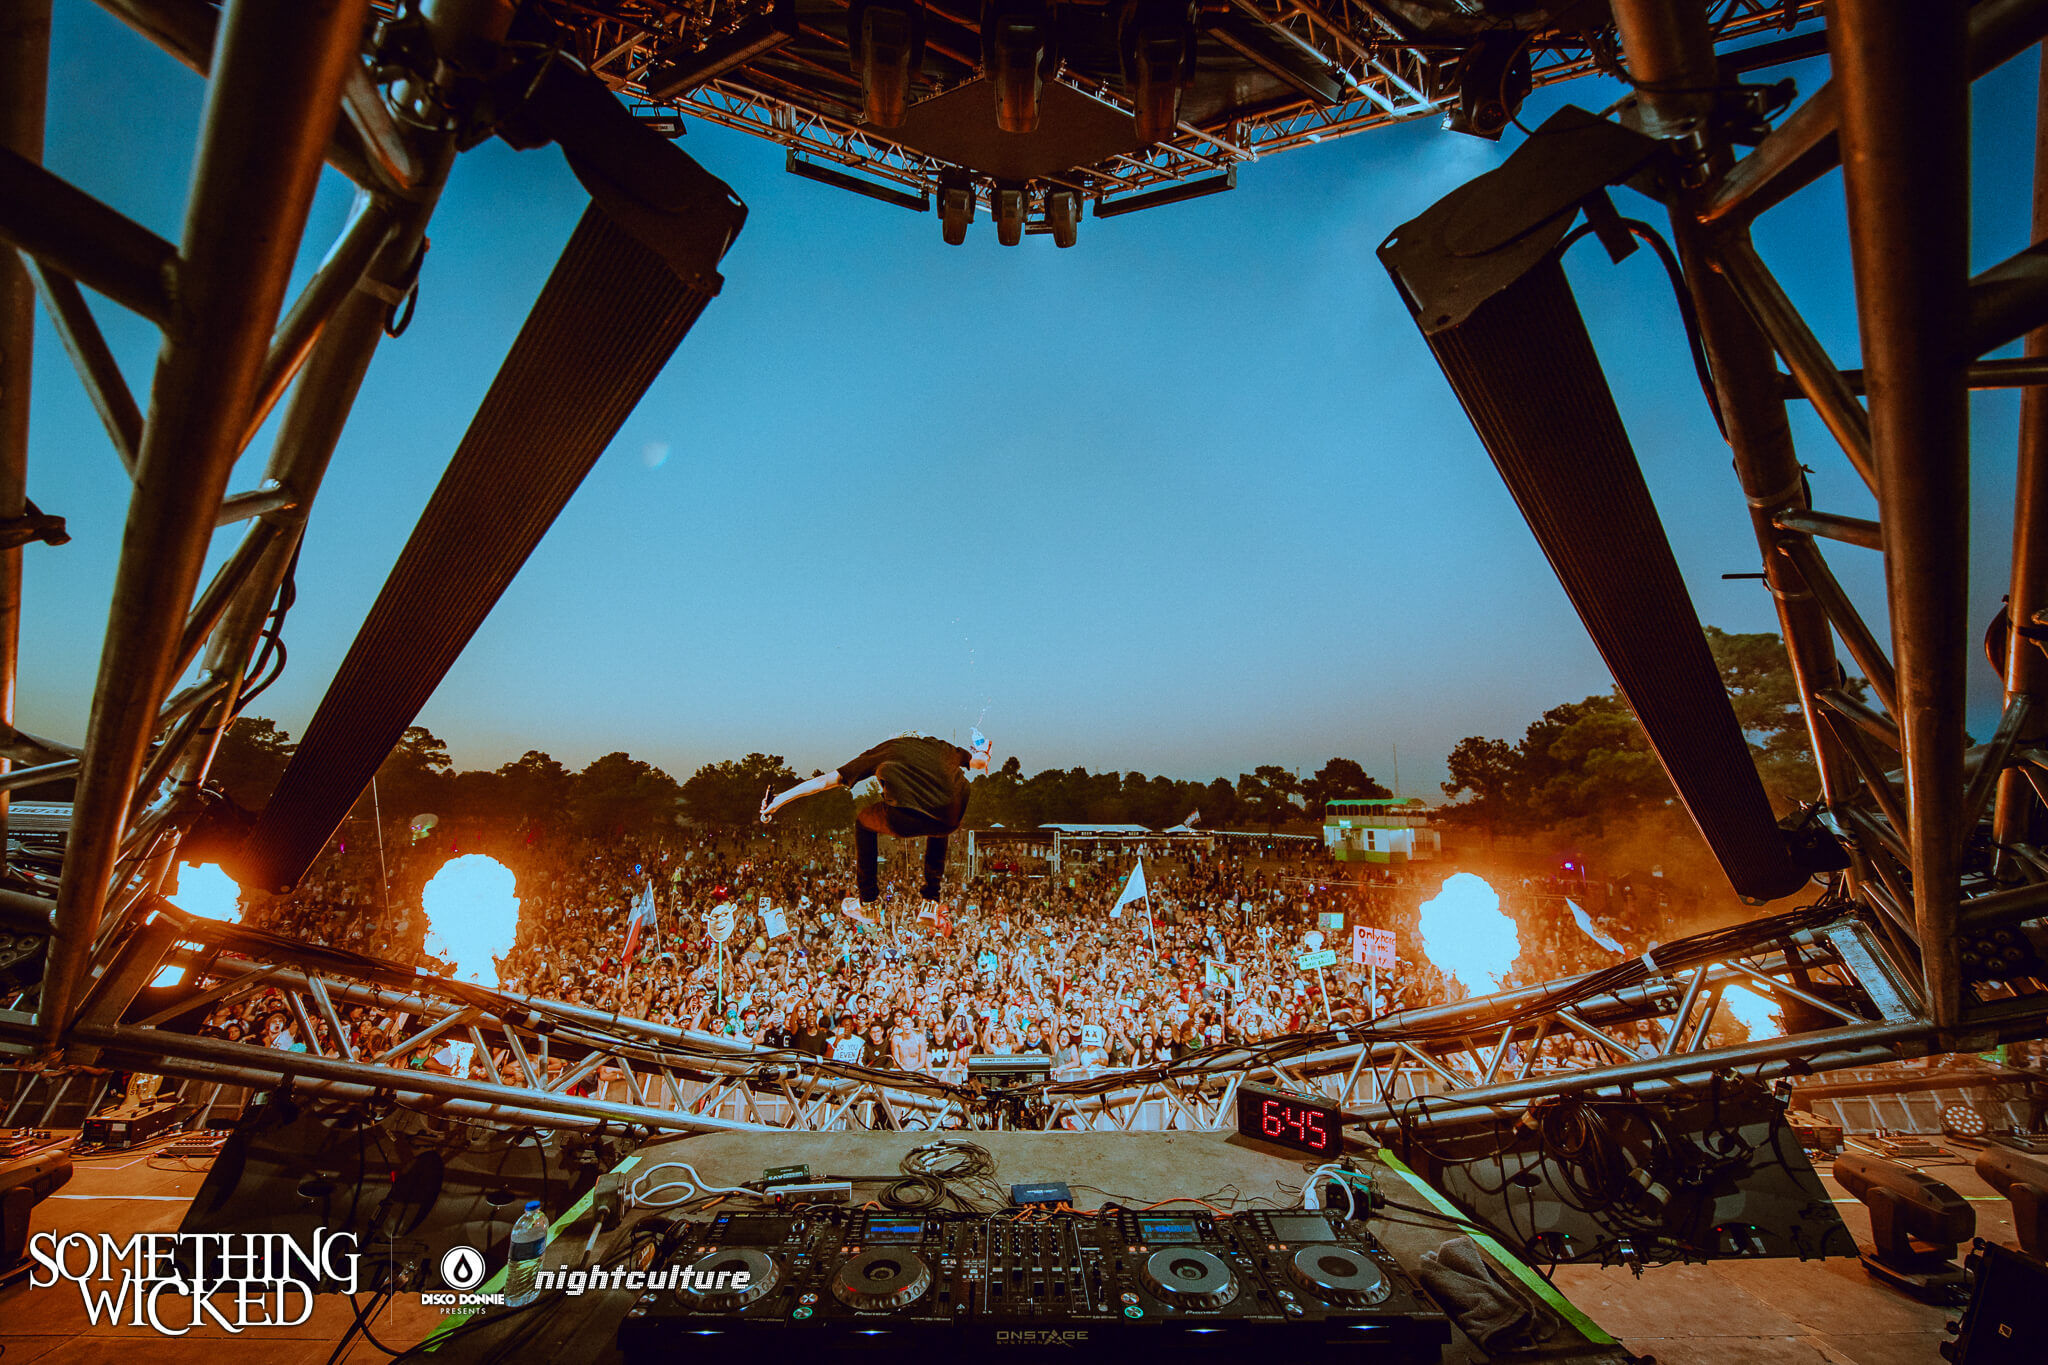 Main stage at Something Wicked. Photo by Julian Bajsel.